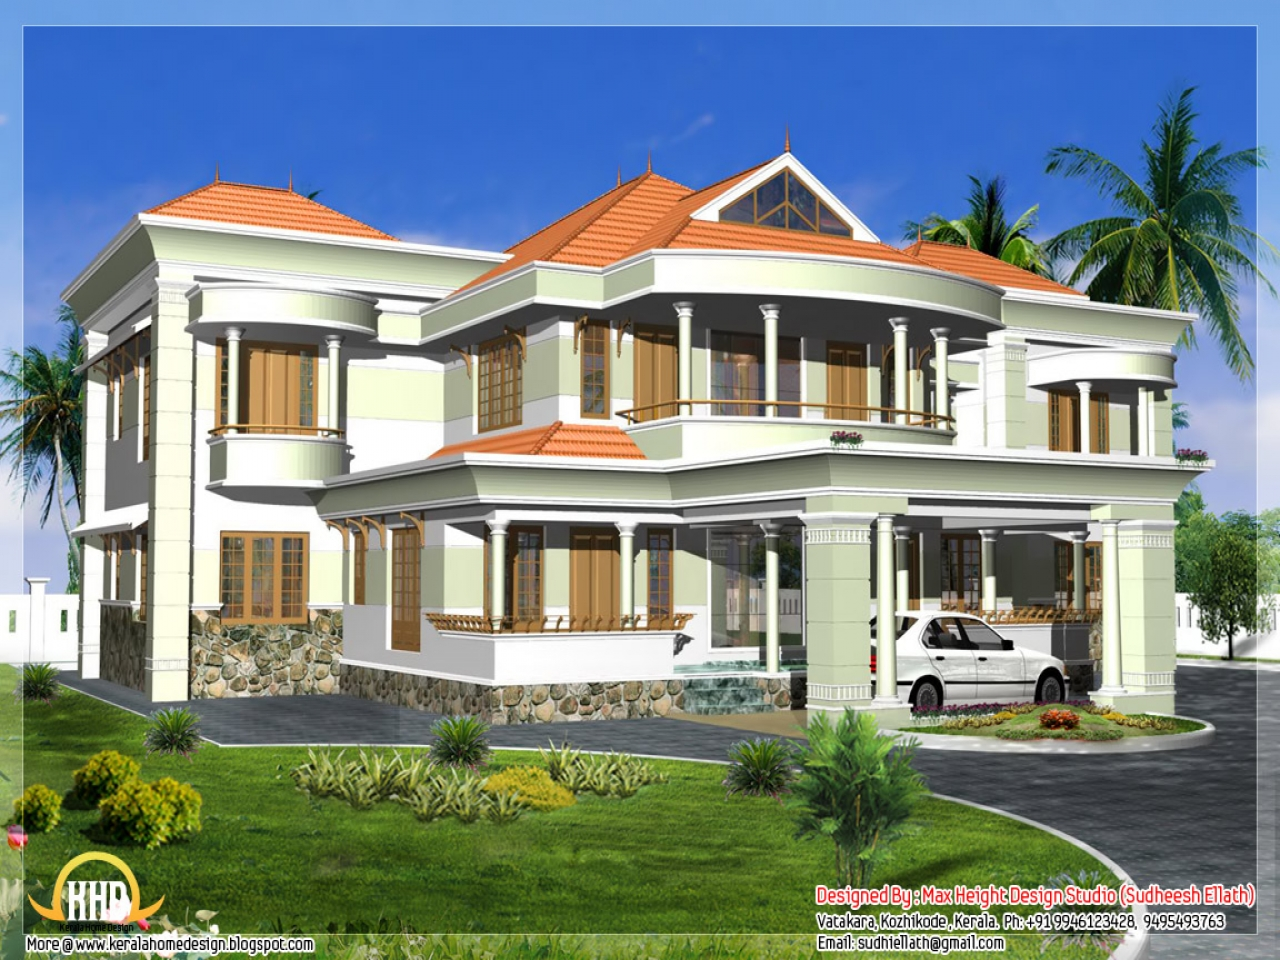 Traditional kerala house designs indian style house design for Sweet home designs indian style